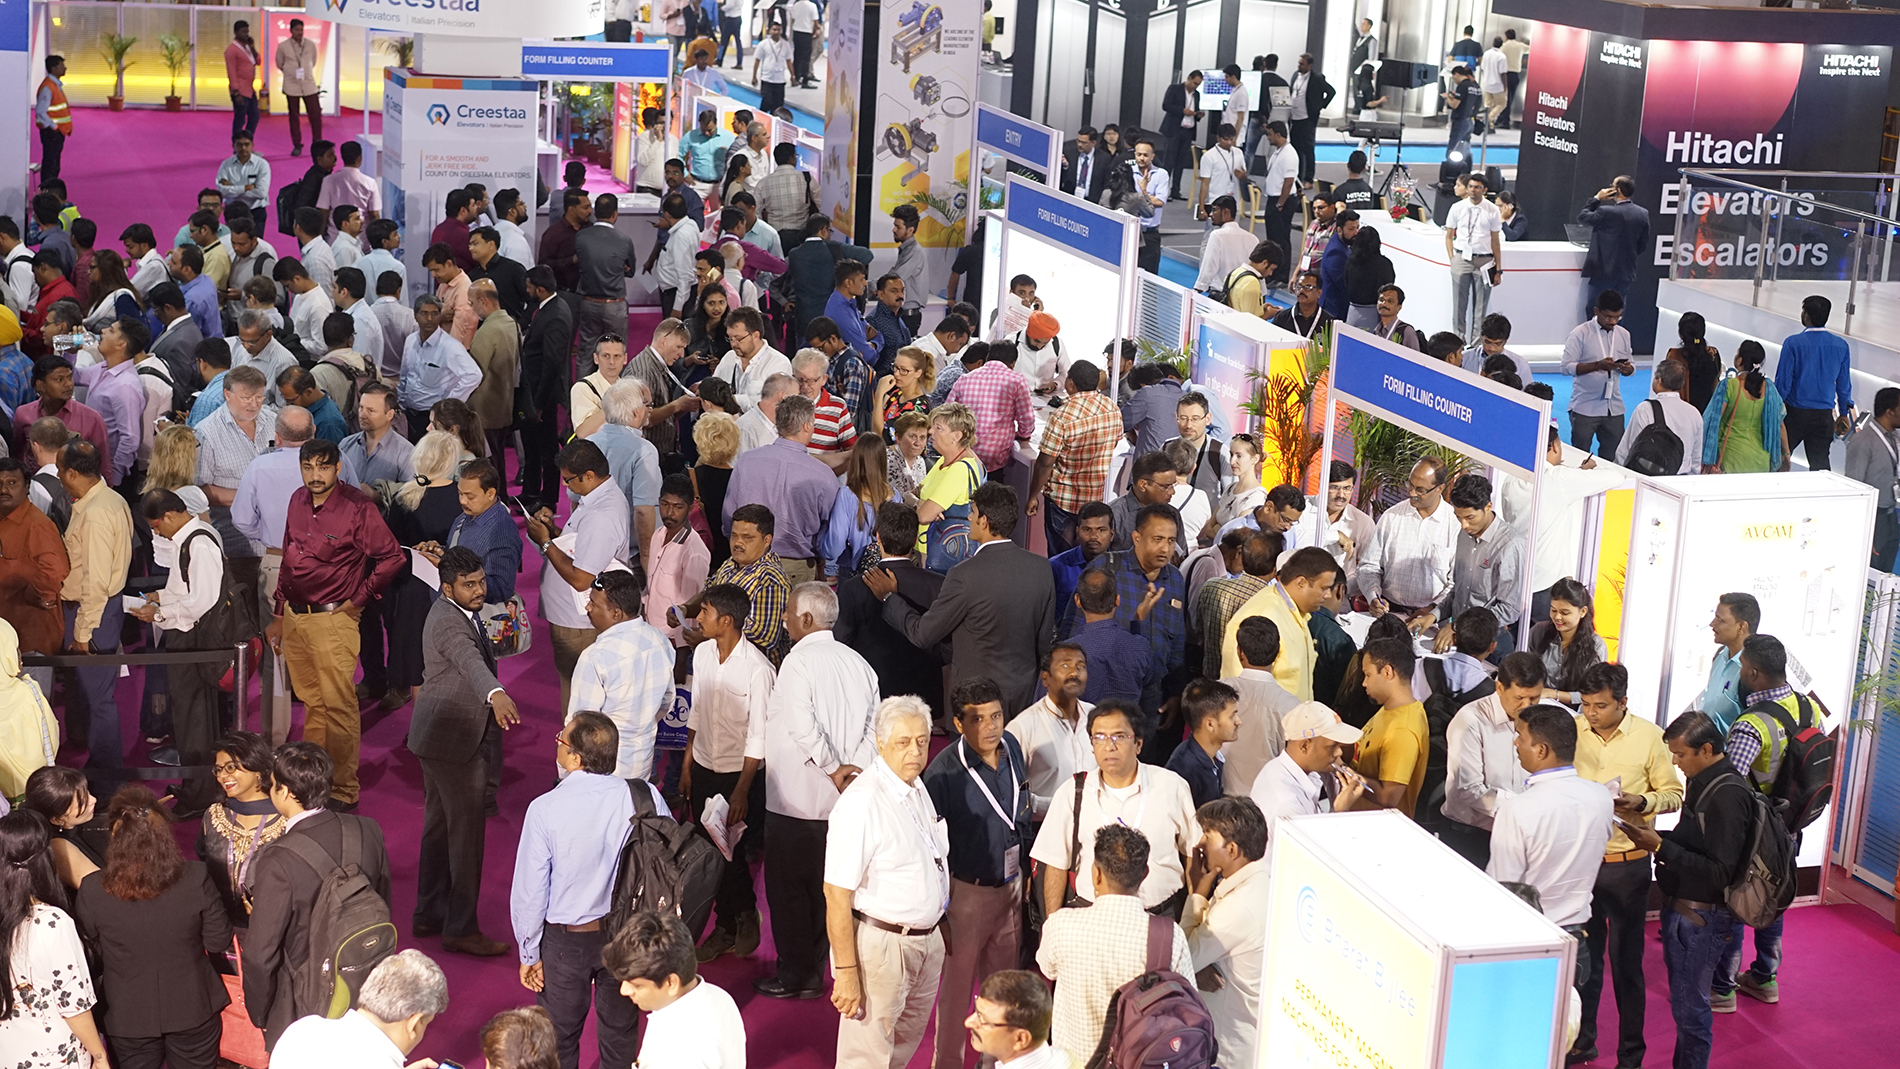 Crowd at IEE Expo (Source: MF India)